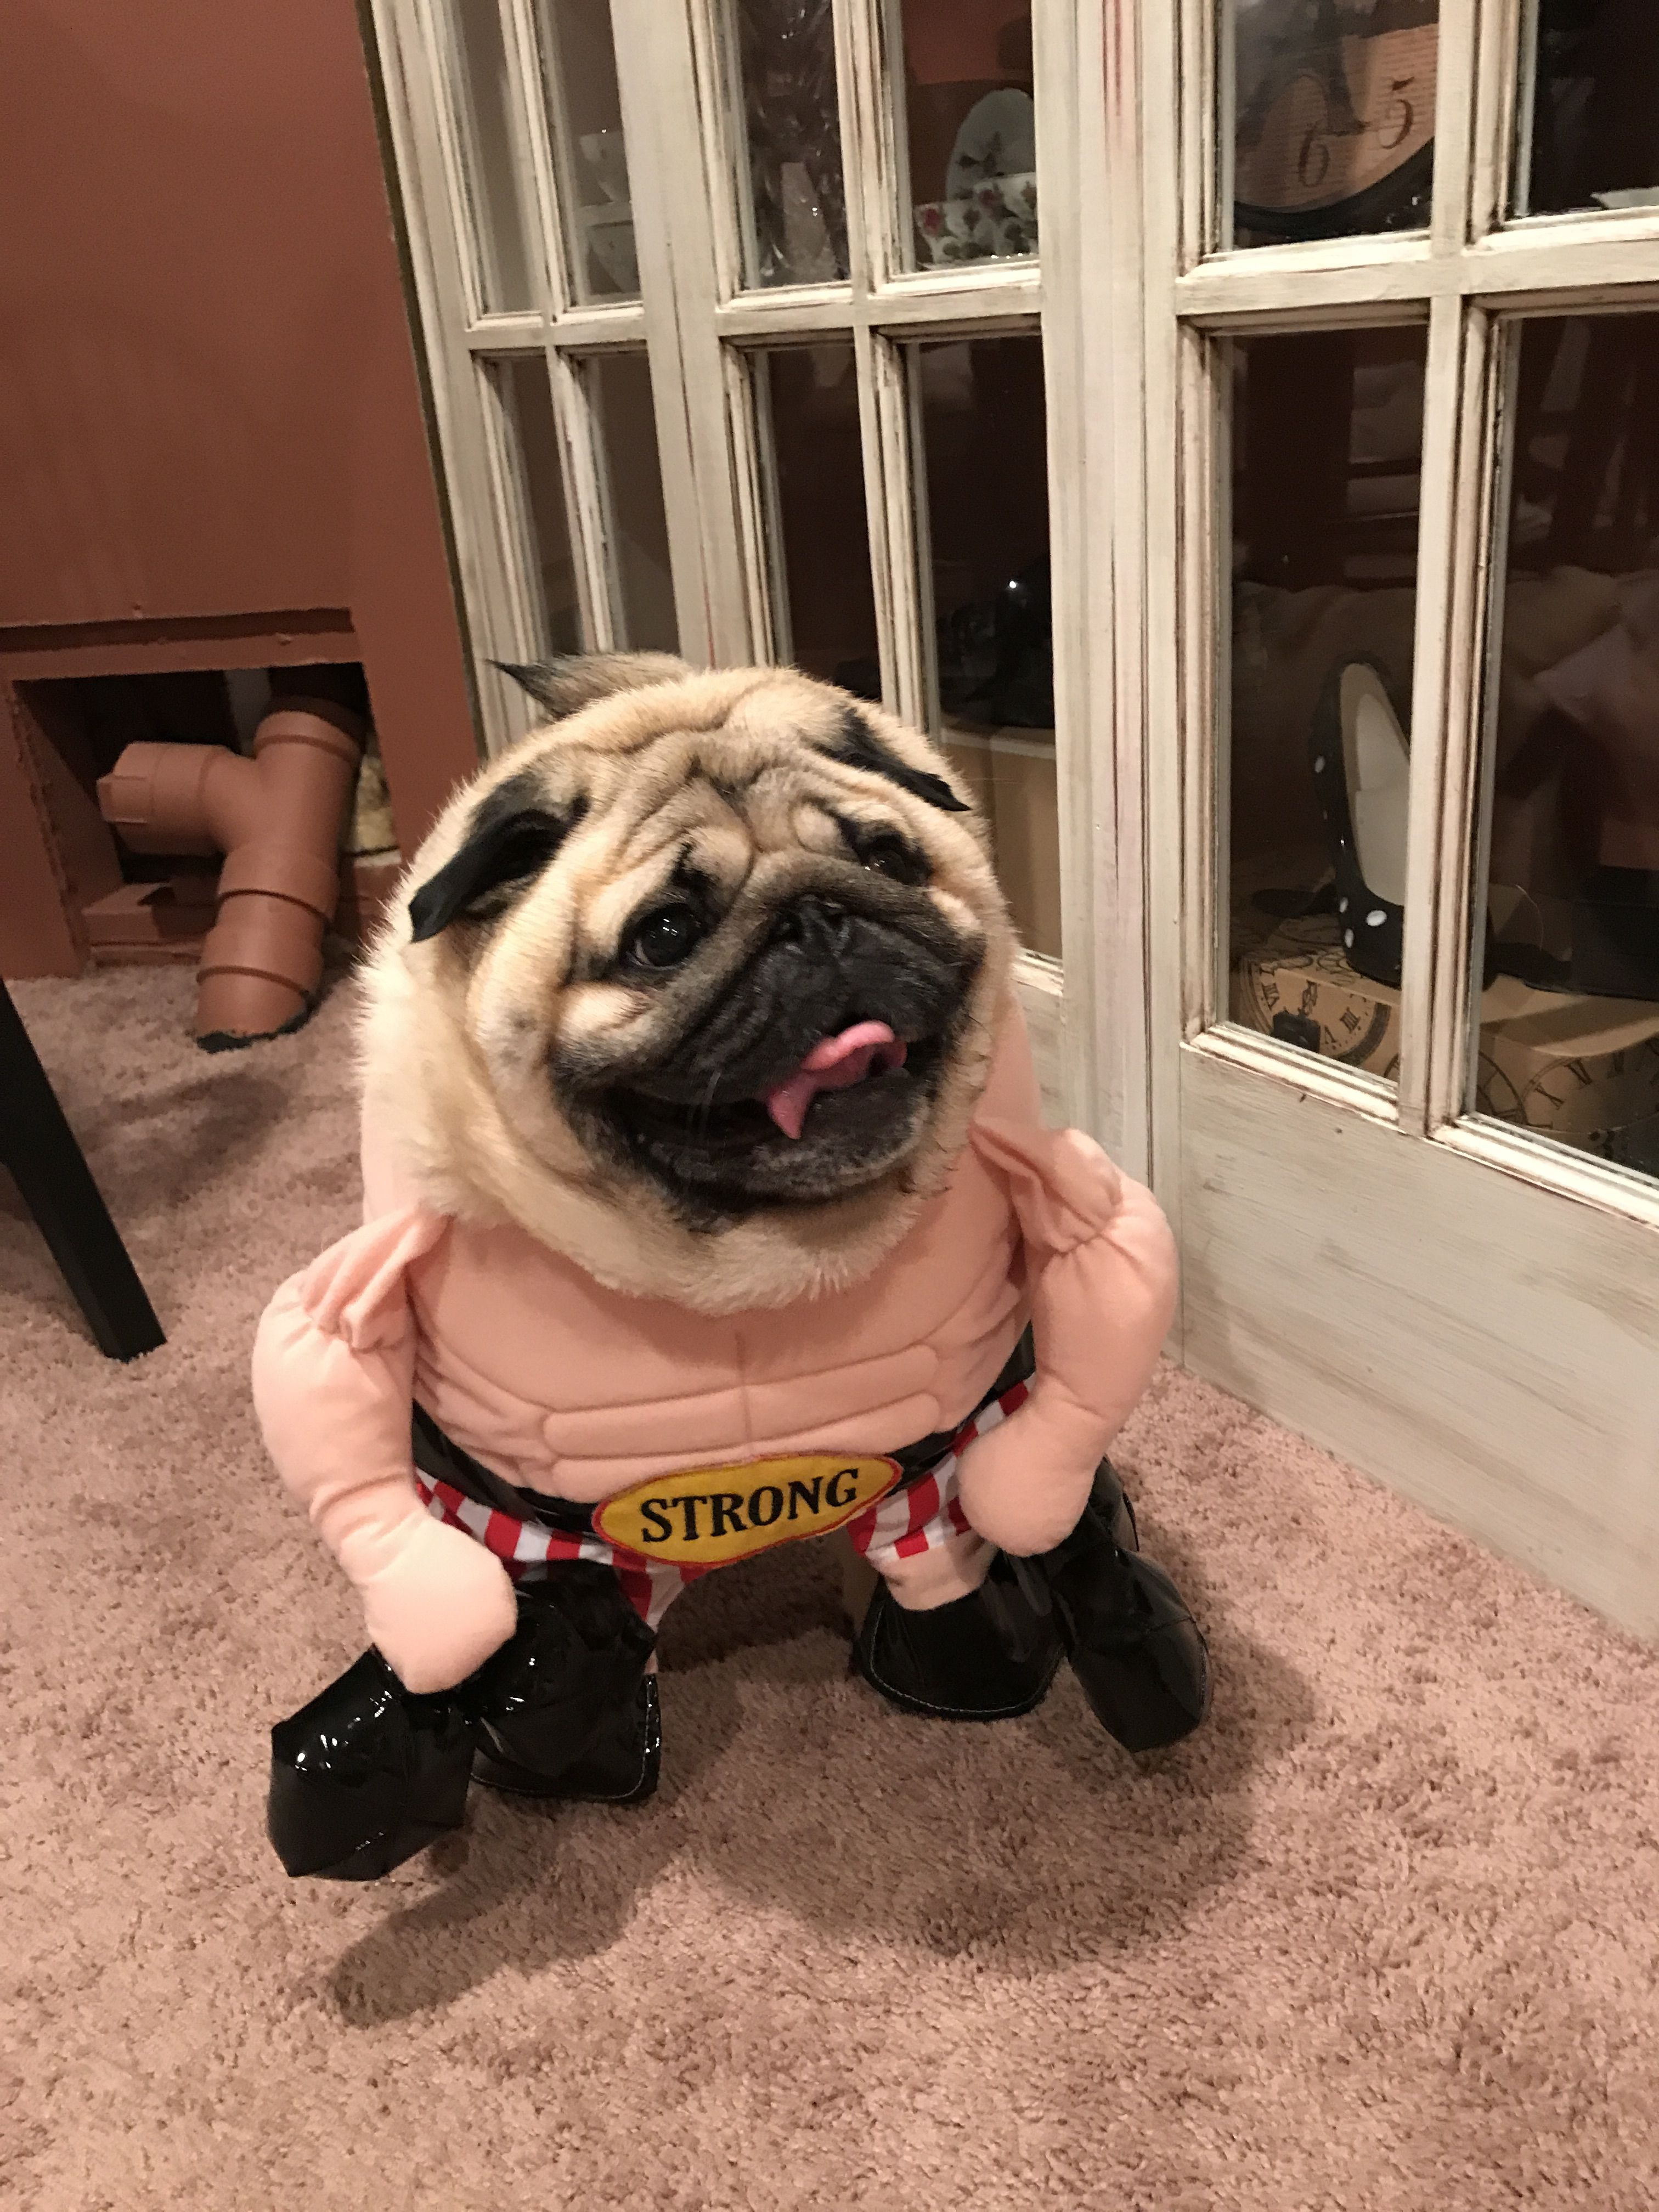 Pin by kim megens on animals pinterest animal funny pugs claire lovers friends animals animales animaux boyfriends animal thecheapjerseys Choice Image